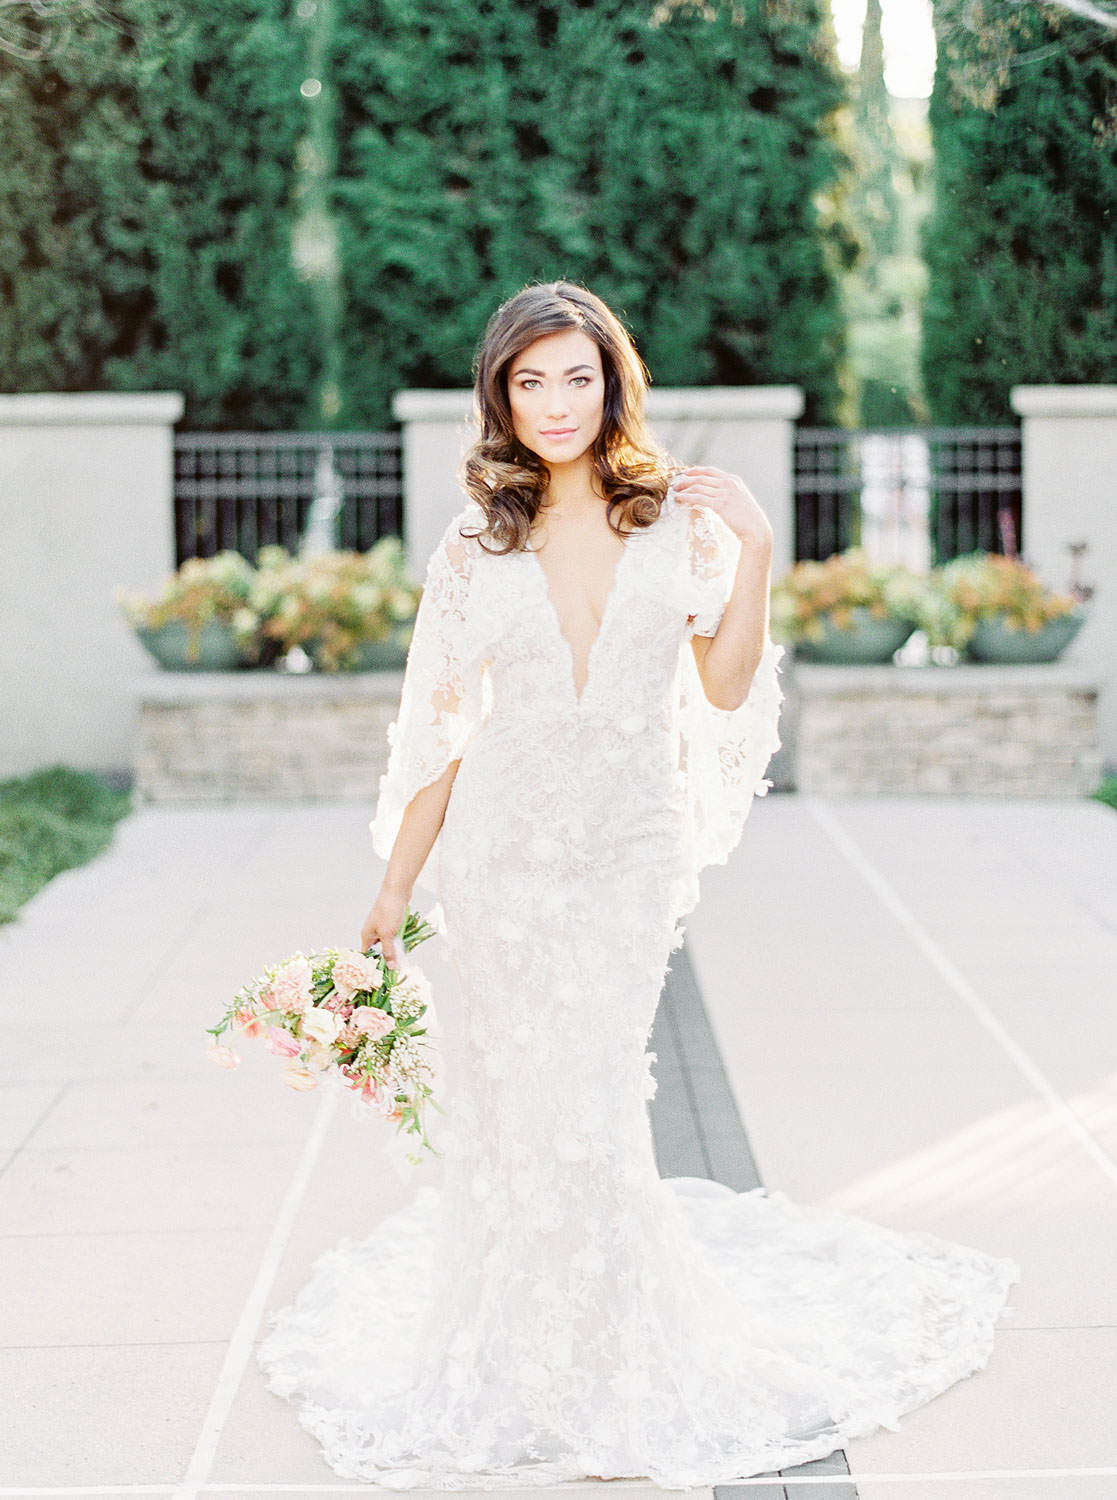 San Diego bridal portraits, Bride in Marchesa Daffodil gown, Bridal bouquet with apricot peach blush pink and green, Film by Cavin Elizabeth Photography